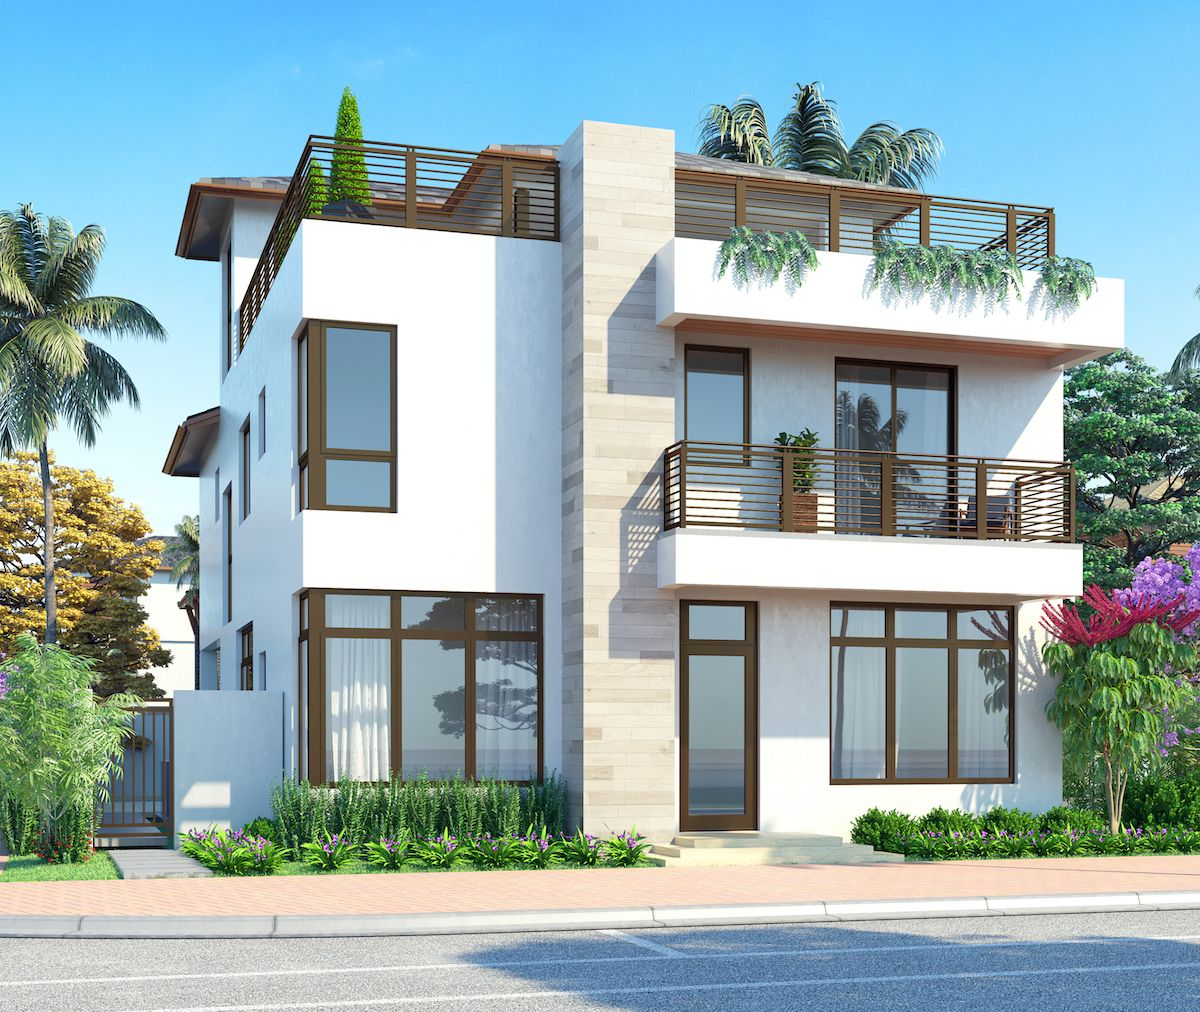 Single Family for Sale at Canarias At Downtown Doral - Model B - Three Story 8333 Nw 53rd Street Suite #102 Miami, Florida 33166 United States